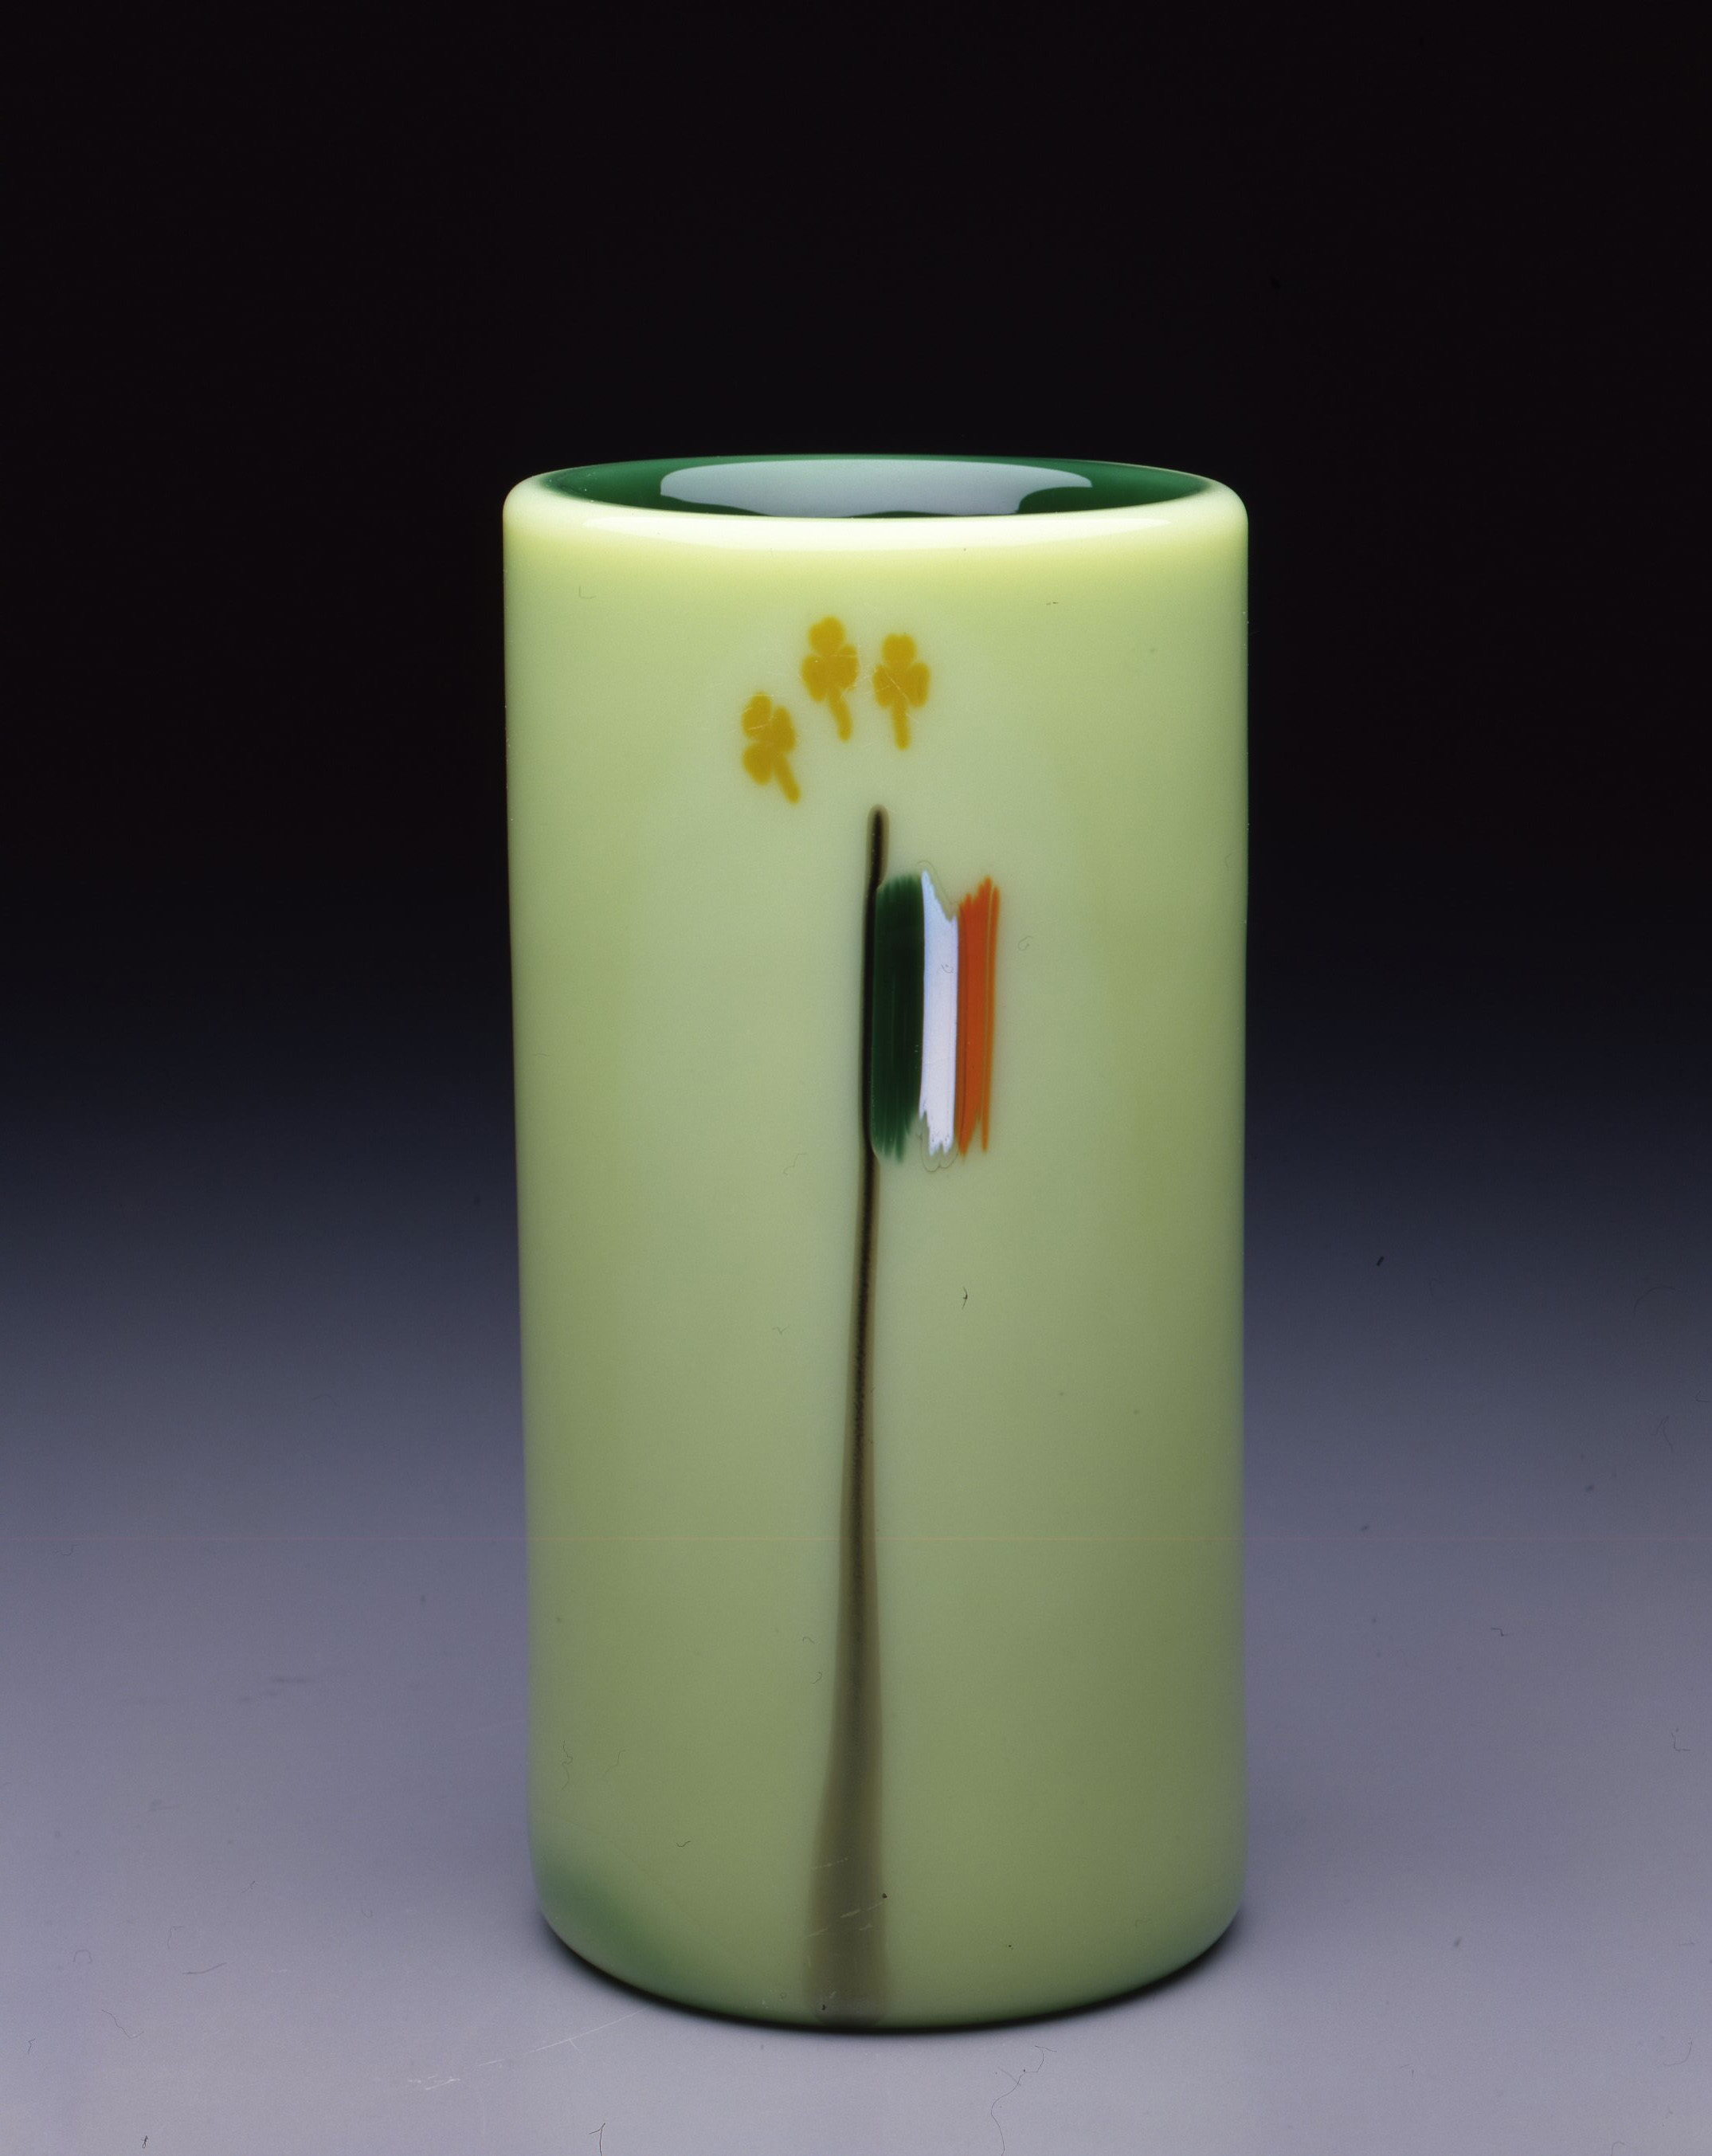 Dale Chihuly,  Irish Cylinder #7   (1975, glass, 8 1/2 x 4 inches), DC.269